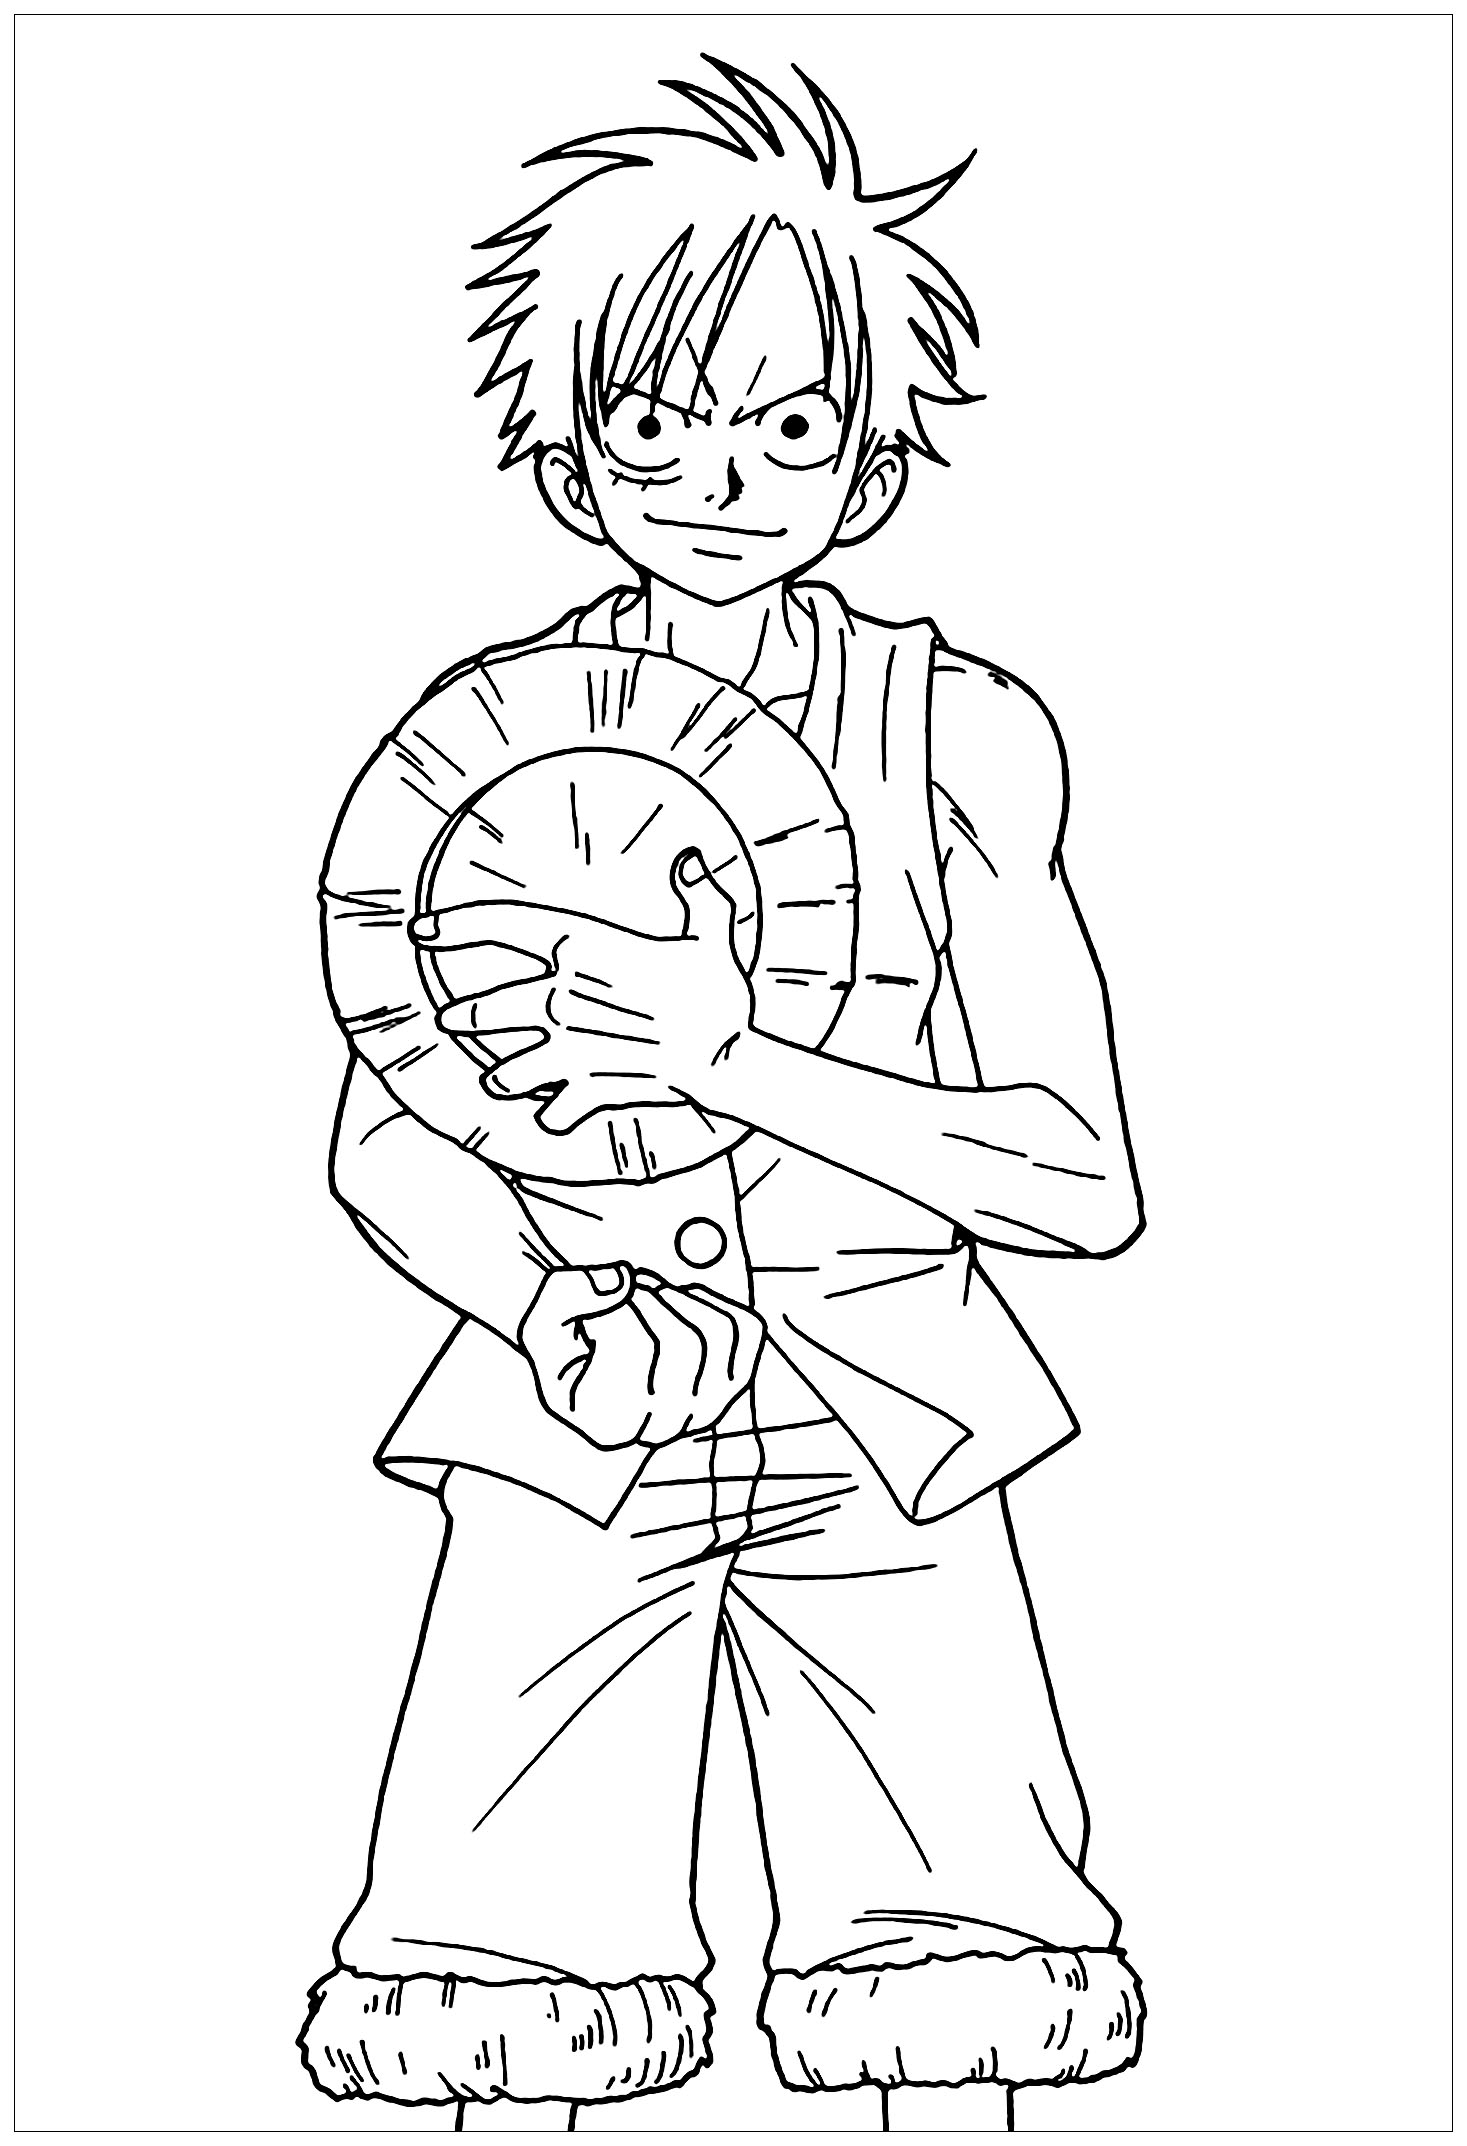 One Piece Coloring Pages : piece, coloring, pages, Piece, Color, Coloring, Pages